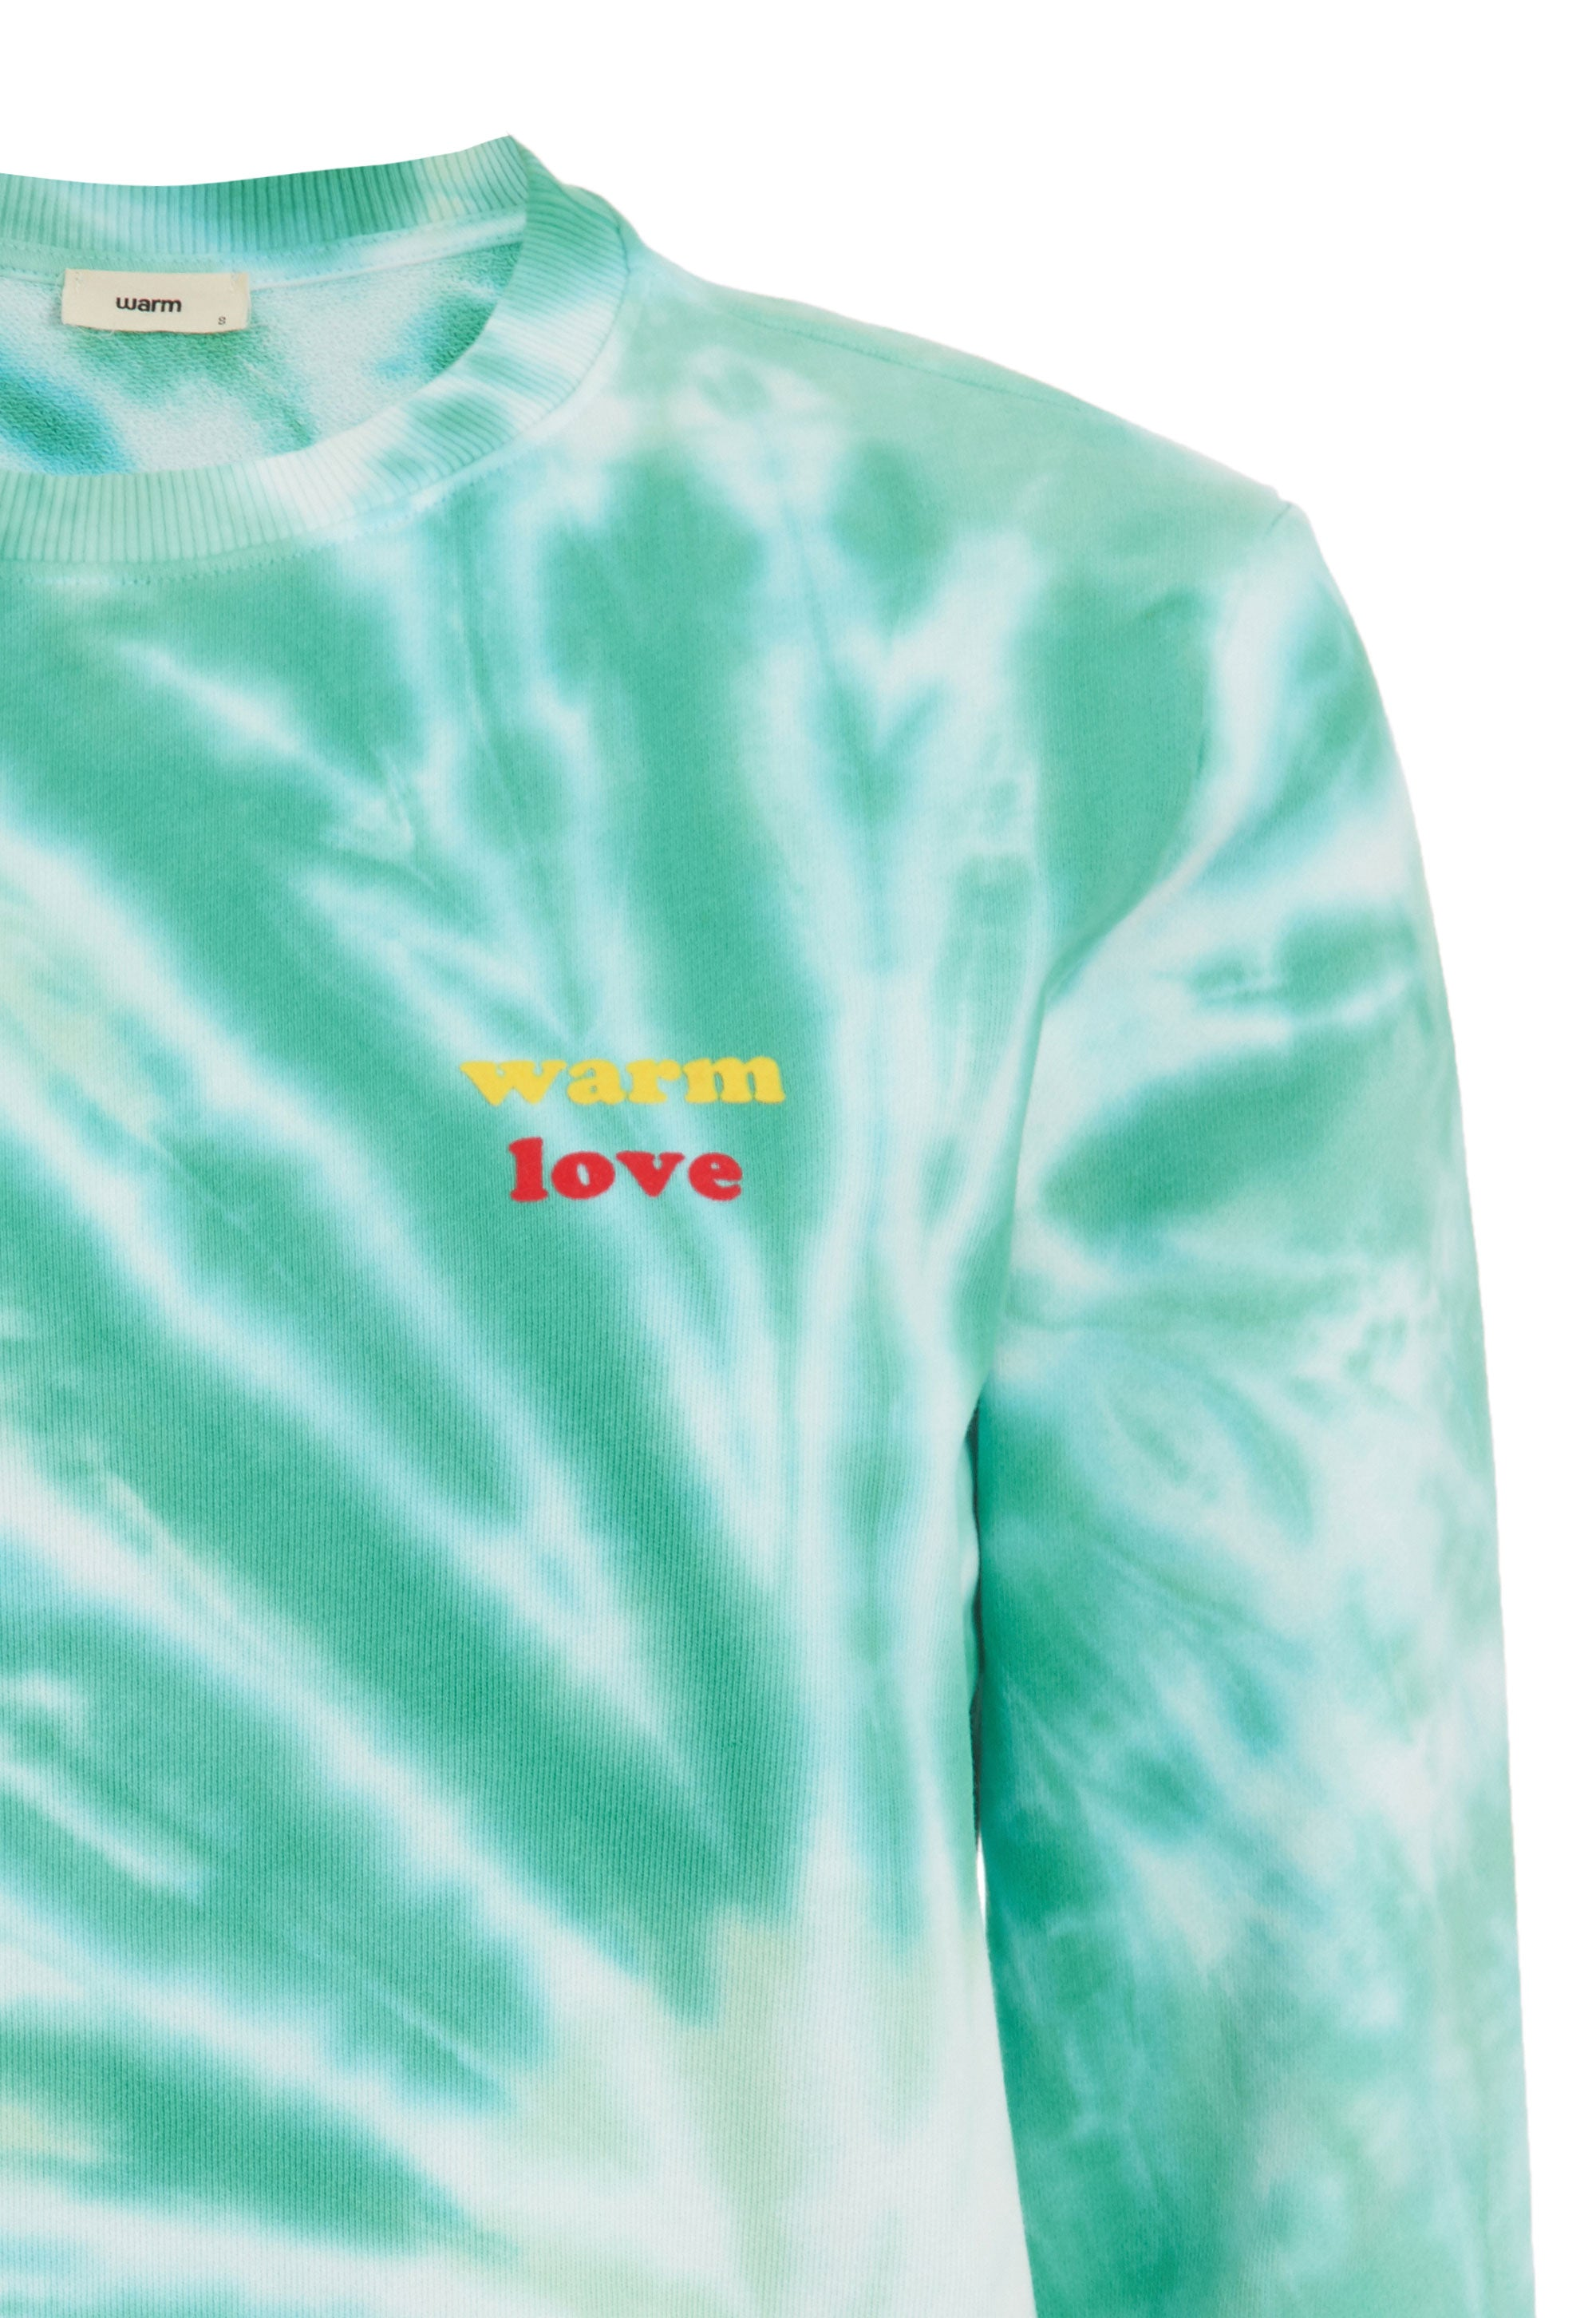 warm love sweatshirt